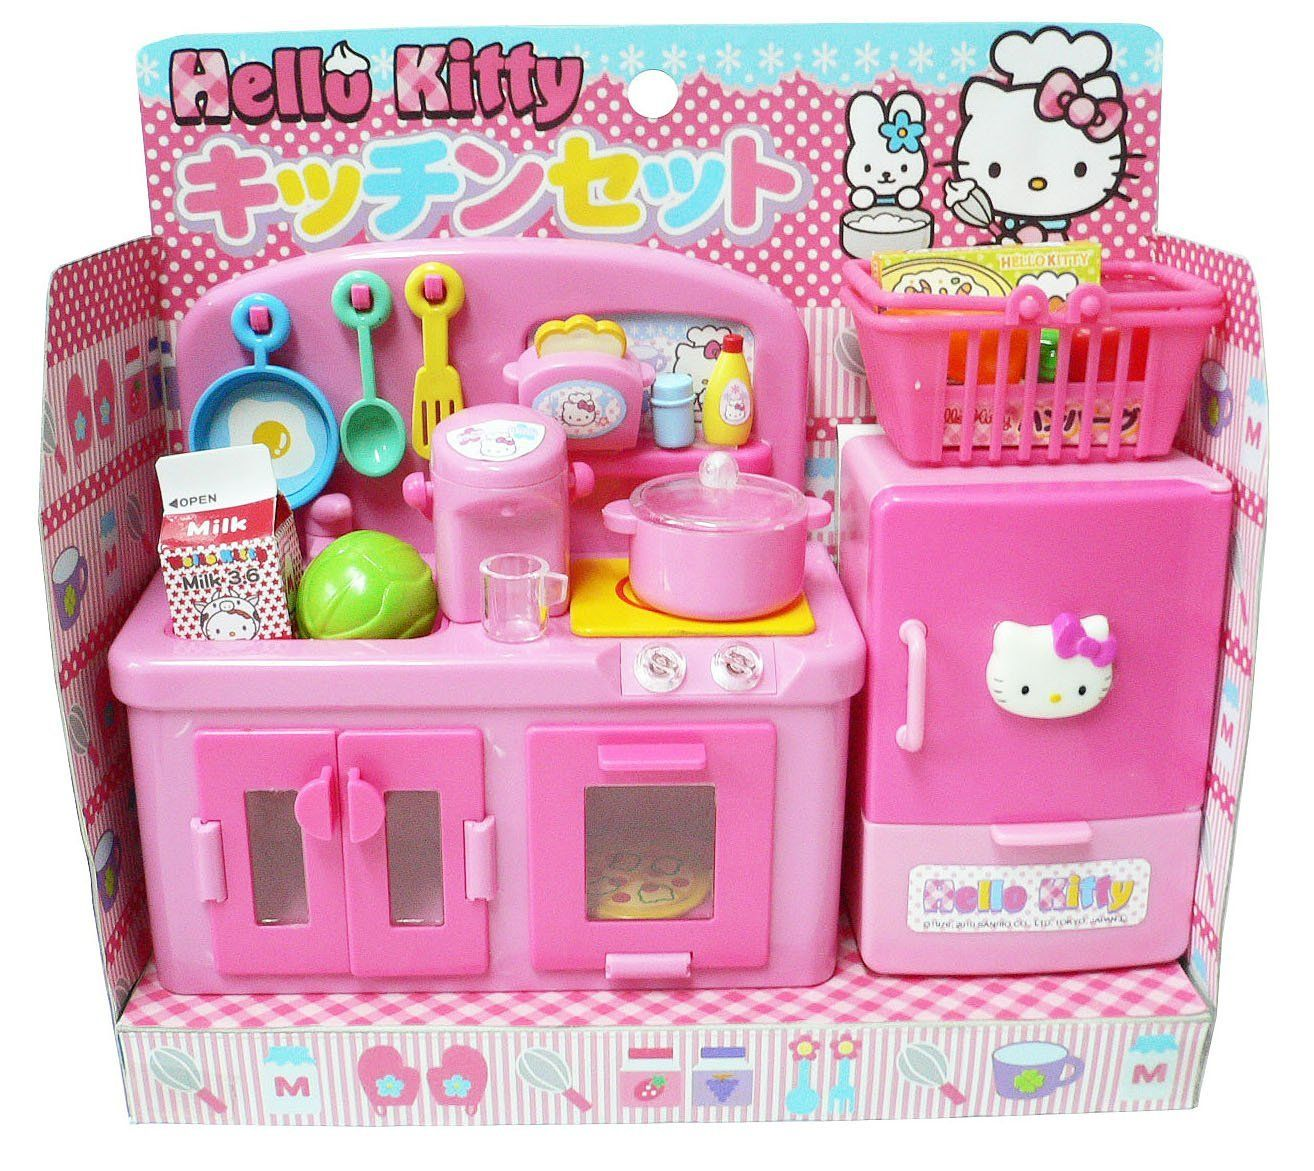 Amazon.com: Hello Kitty Kitchen Play Set Miniature Toy Preschool Girl Role Play: Toys & Games #miniaturetoys